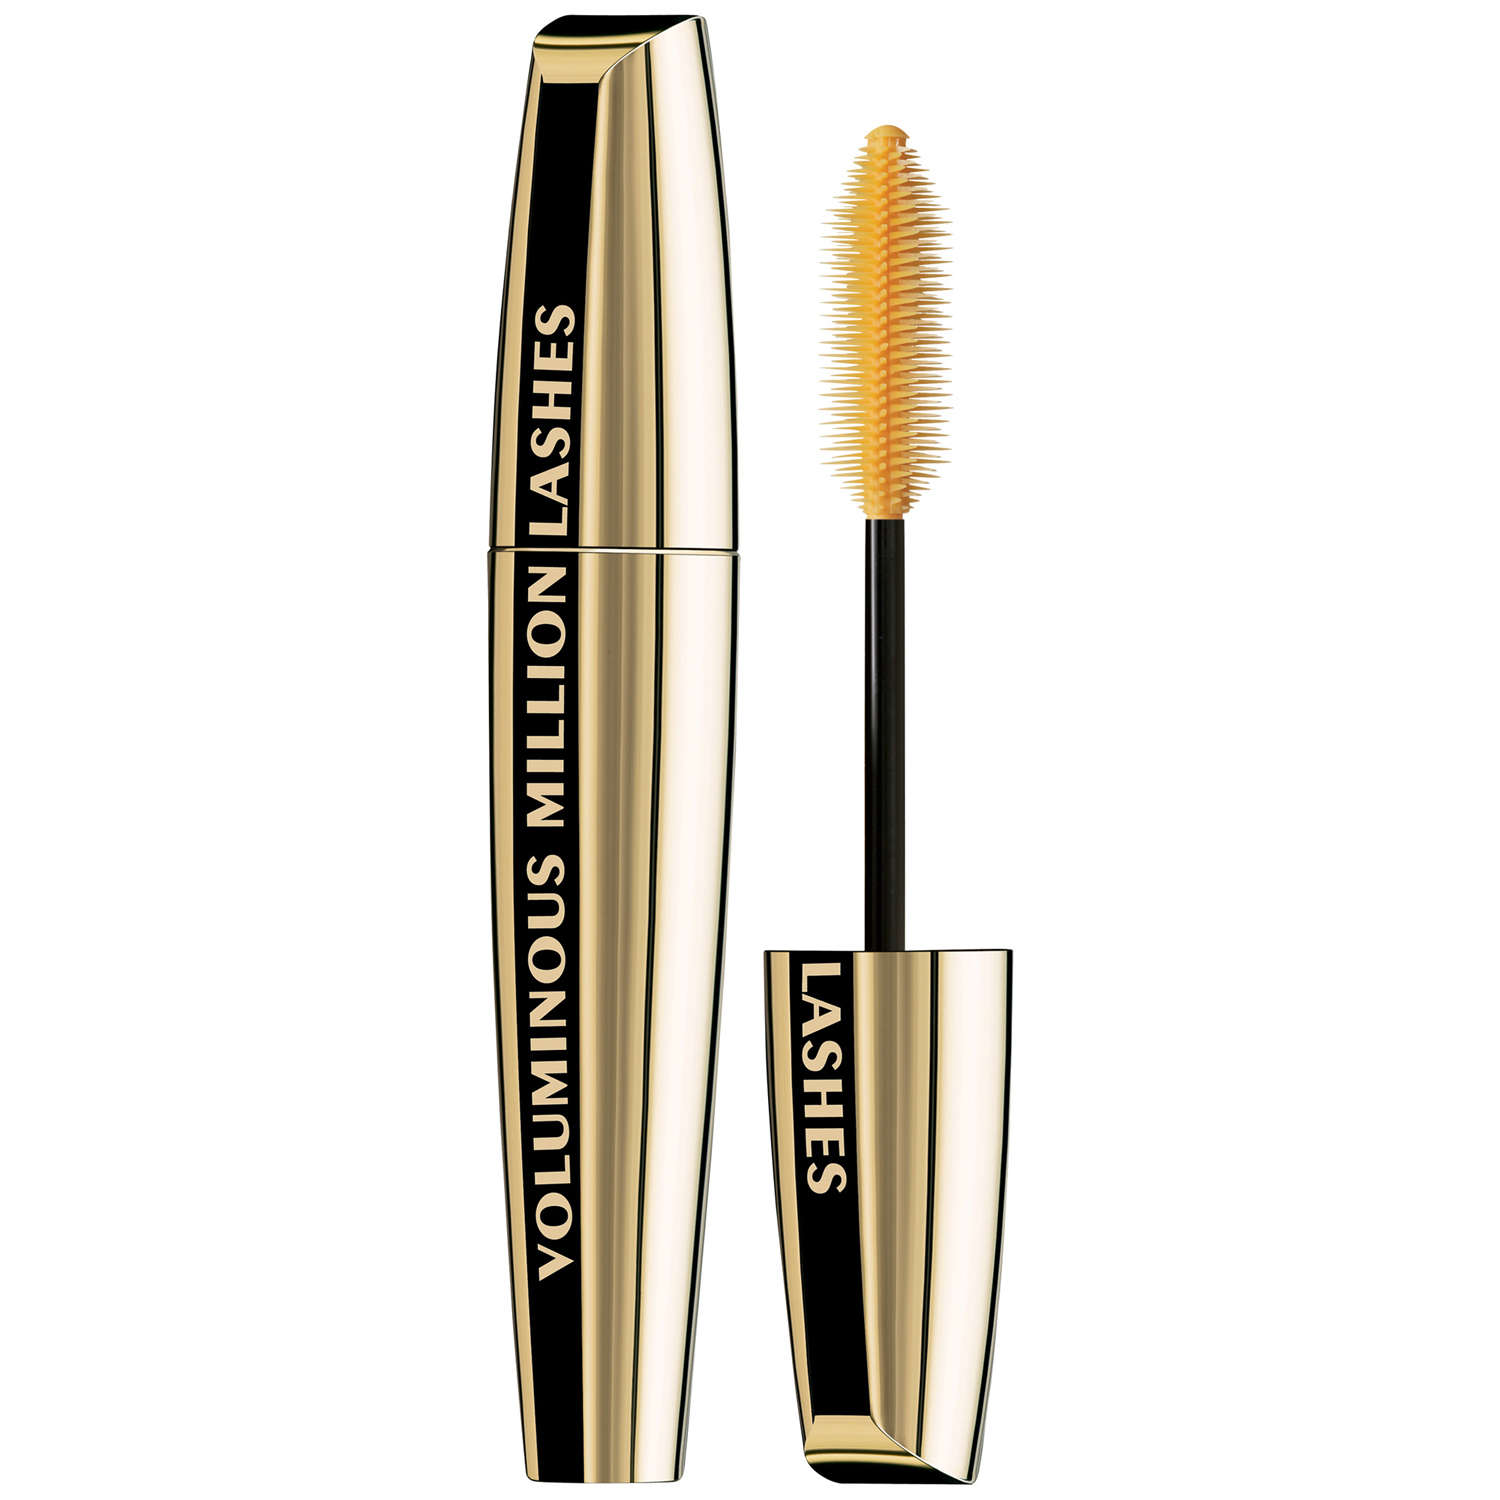 L'Oreal Paris Voluminous Million Lashes Mascara, Carbon Black